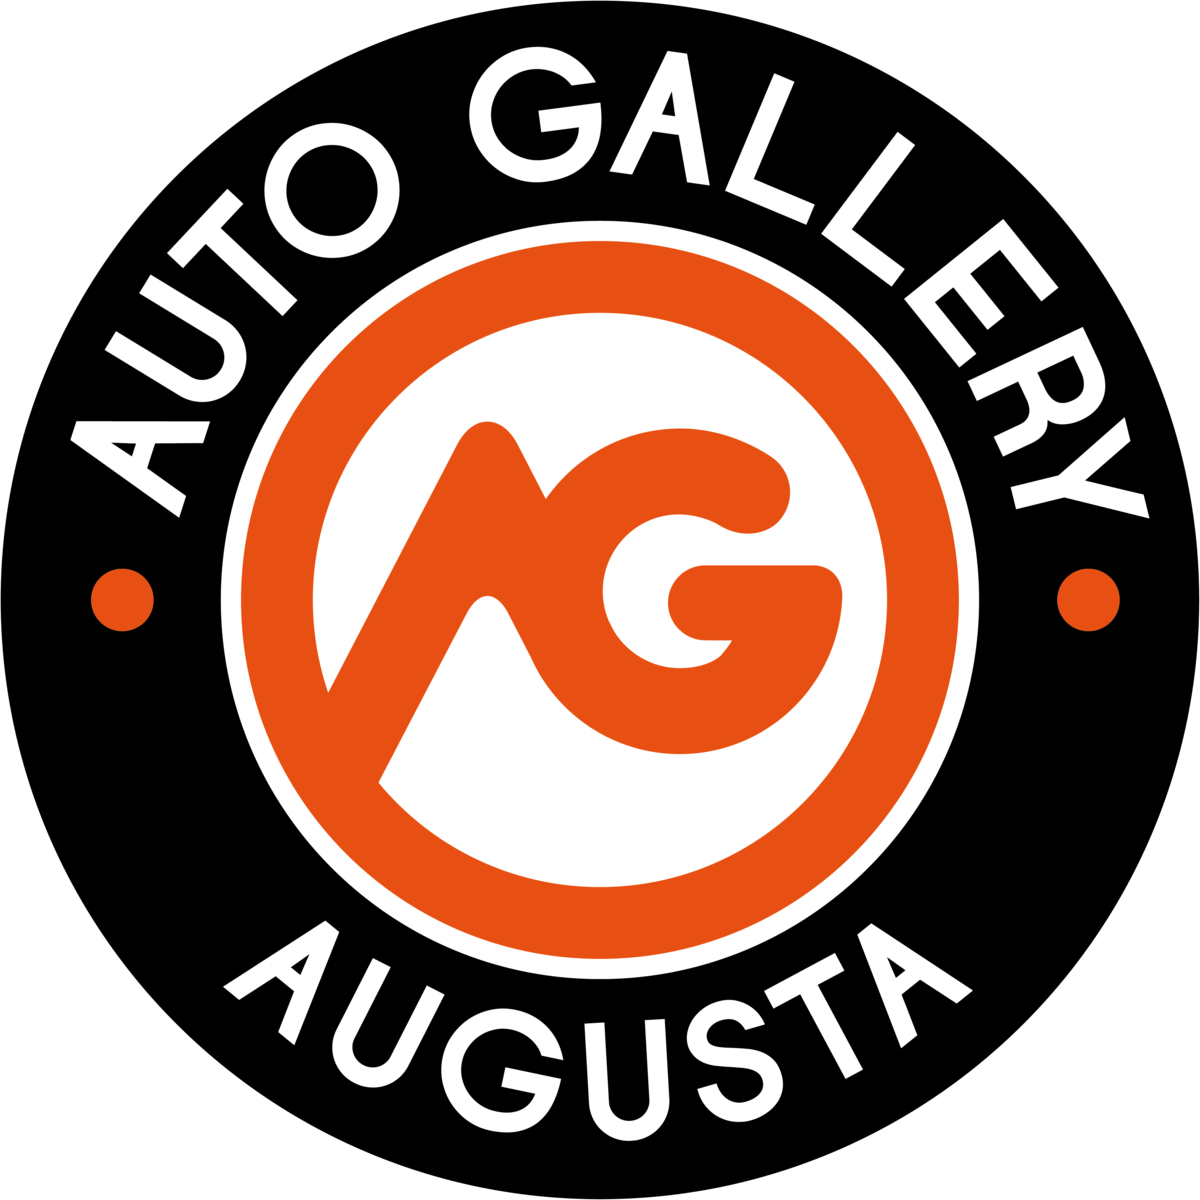 Auto Gallery Augusta - Augusta, GA: Read Consumer reviews, Browse Used and New Cars for Sale